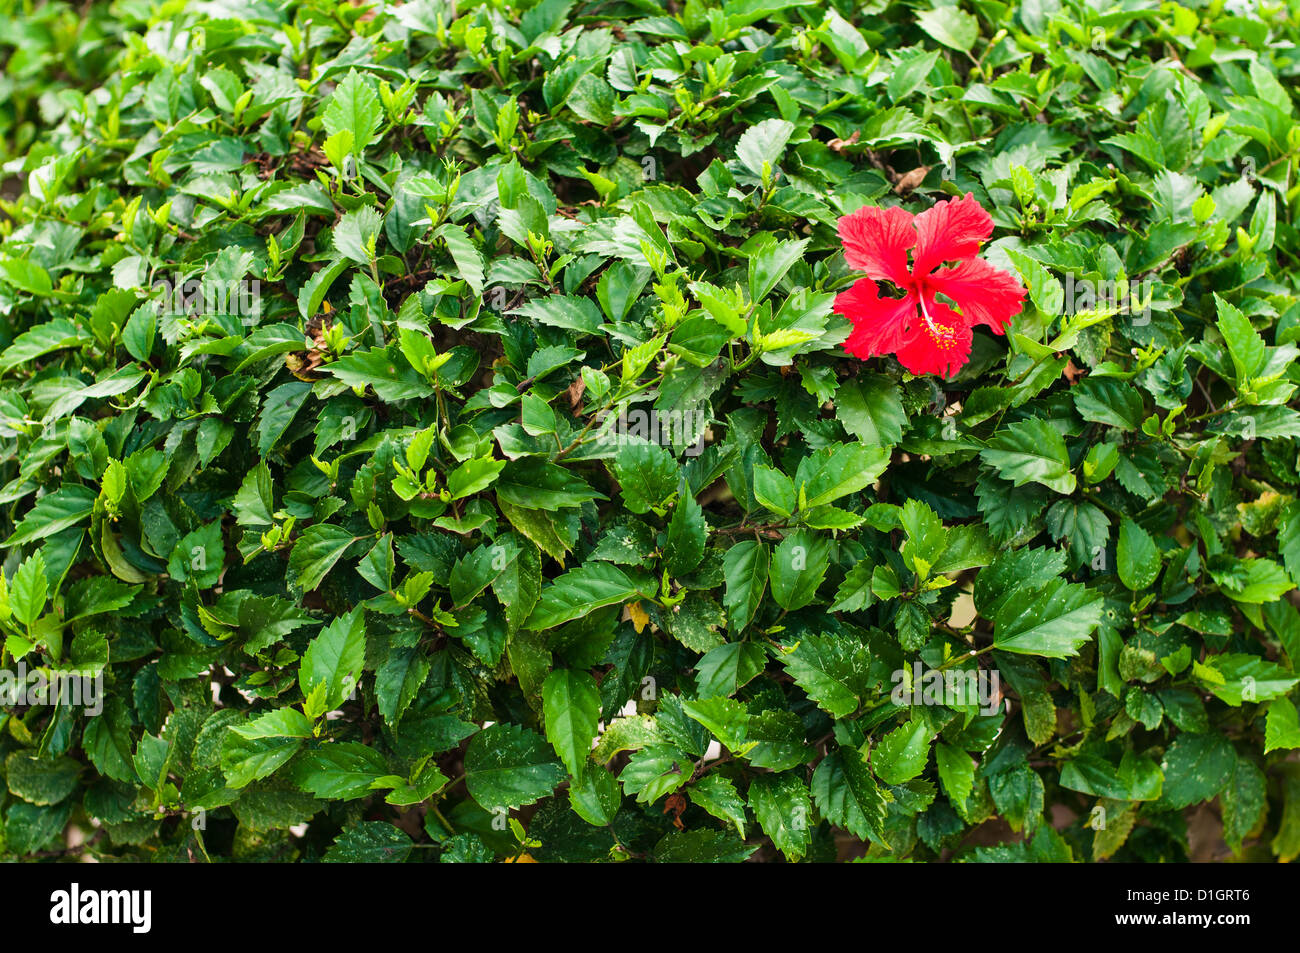 Red Hibiscus Flower On Green Leaves Wall Stock Photo 52615702 Alamy